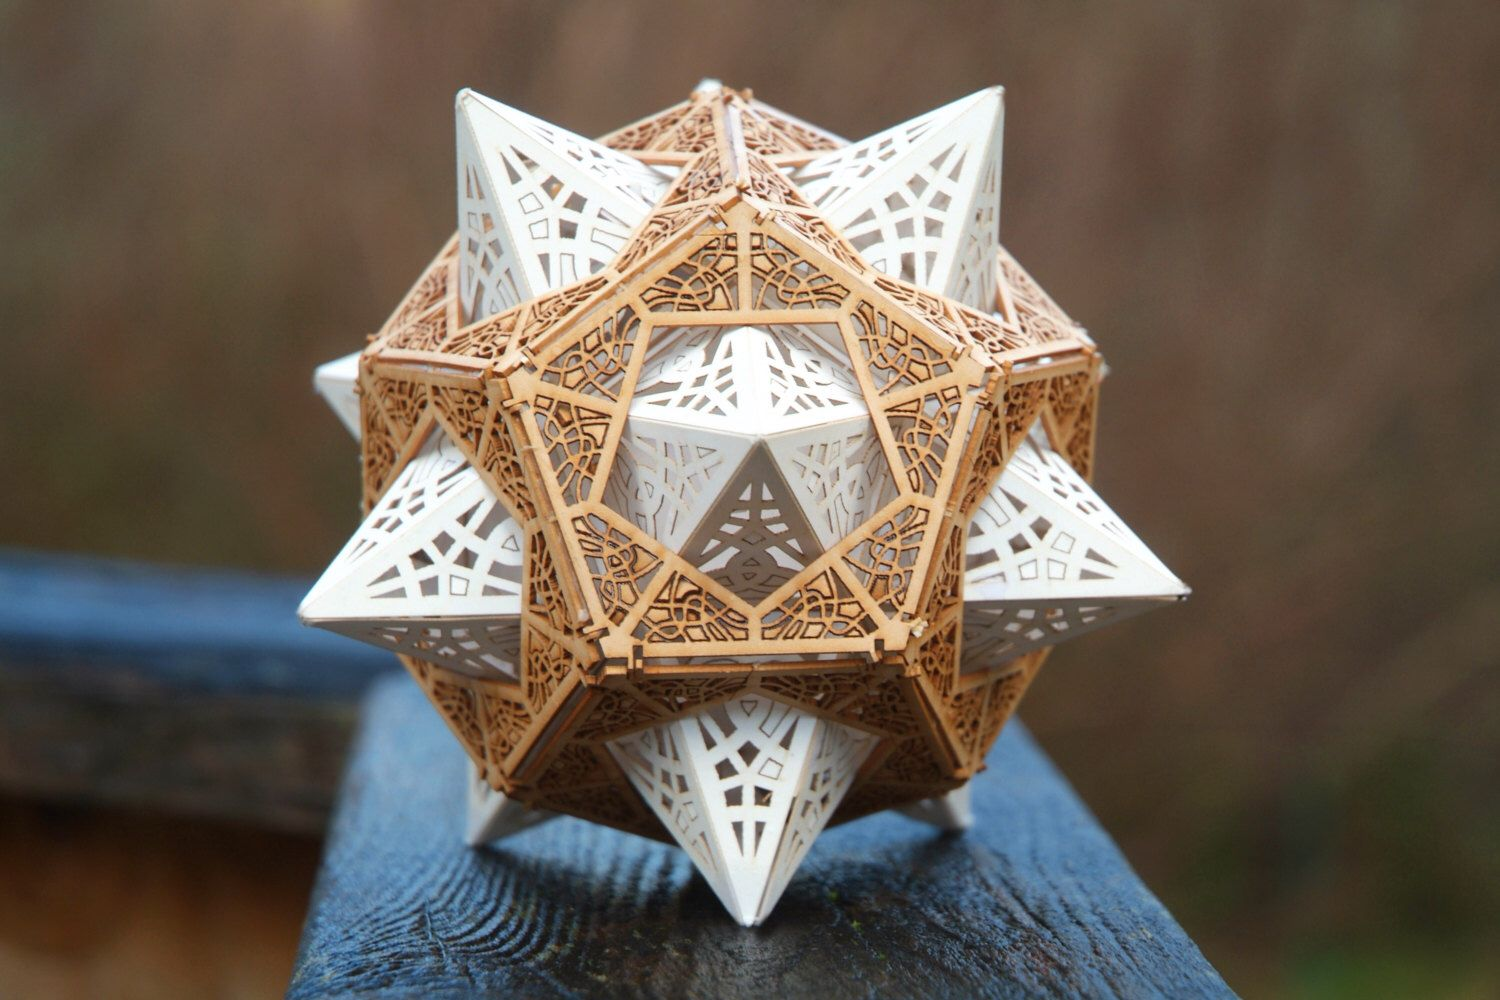 DIY Kit for Star Orb Dodecahedron - Sacred Geometry, Model Kit by ThomasHouhaDesigns on Etsy https://www.etsy.com/listing/151418544/diy-kit-for-star-orb-dodecahedron-sacred